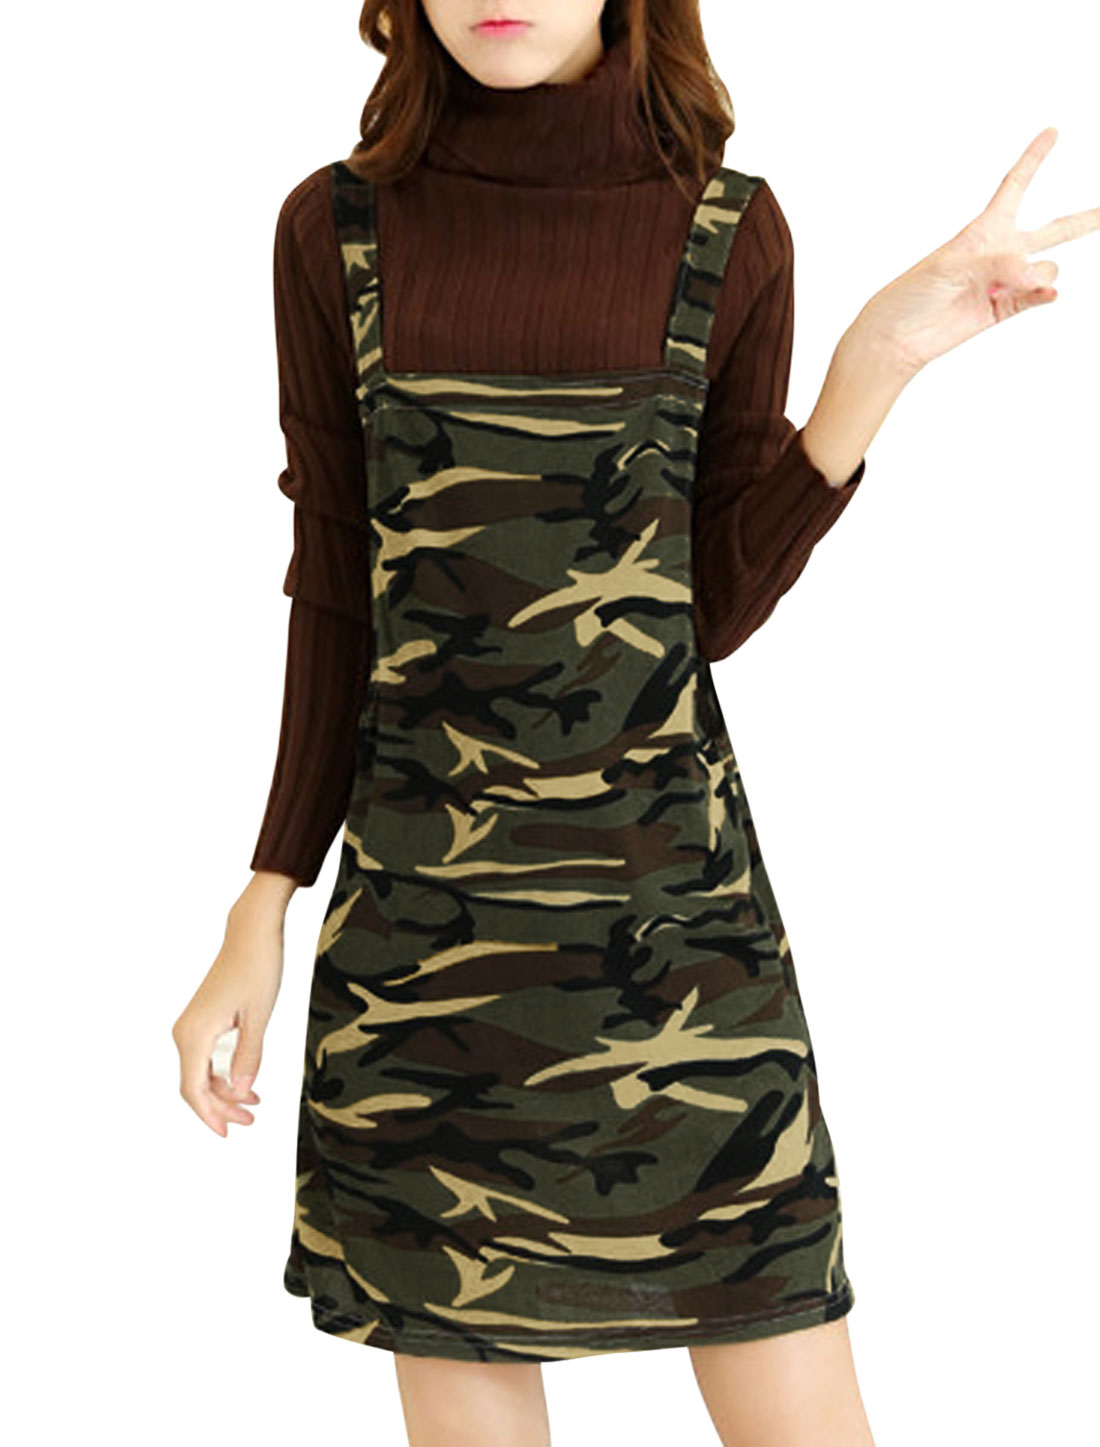 Lady Shoulder Straps Camo Print Chic Straight Knit Suspender Dress Beige Army Green M